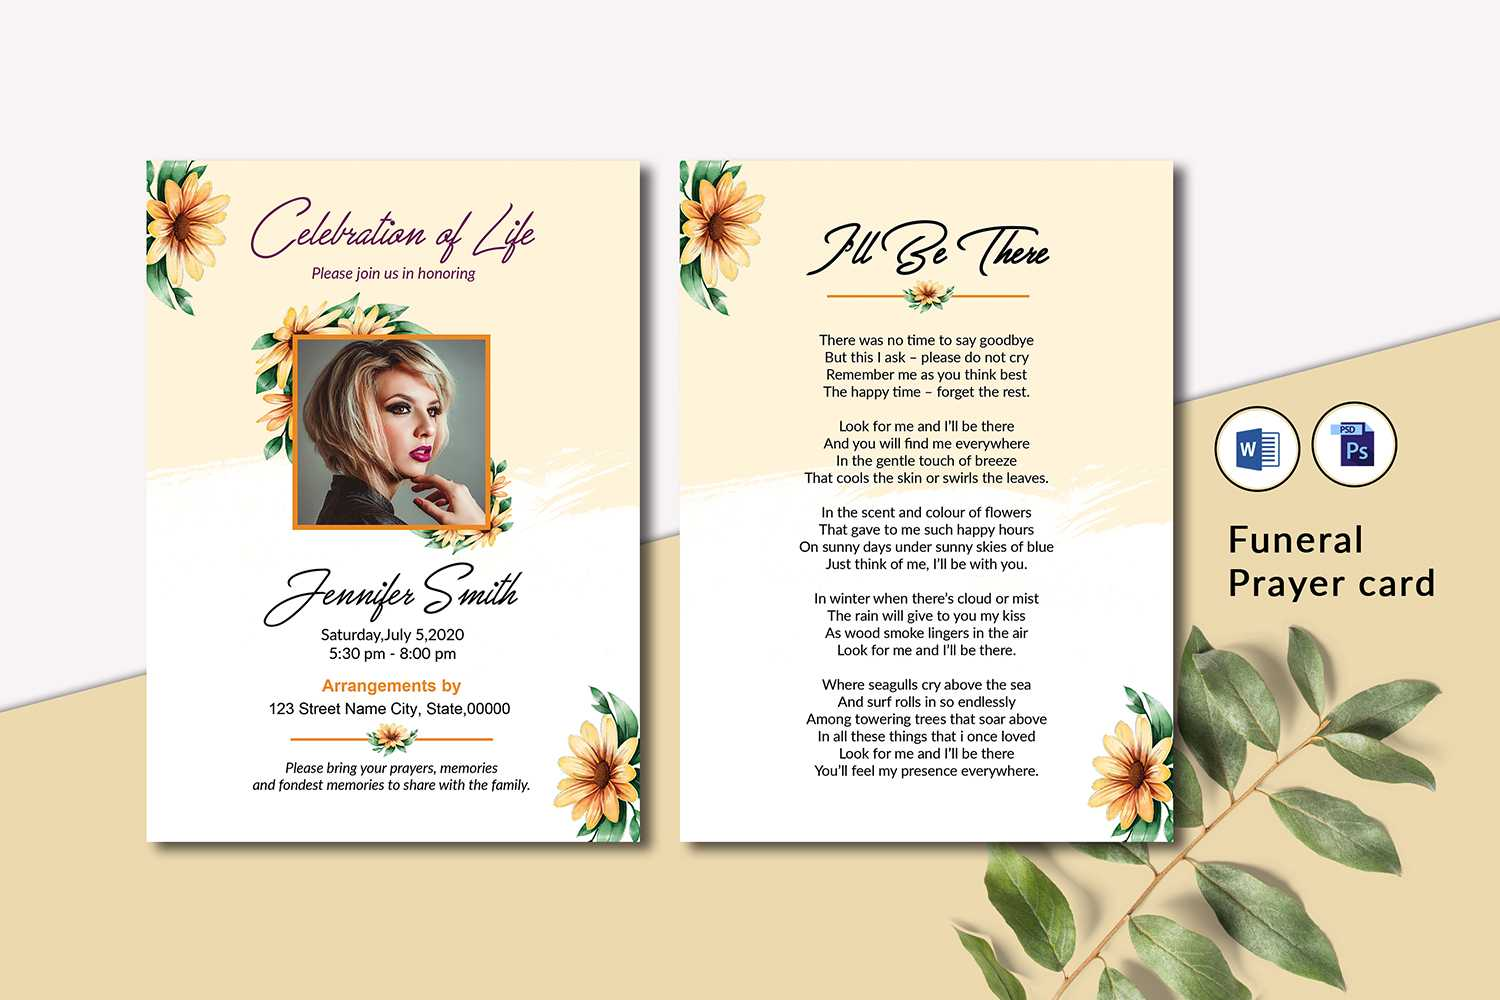 Memorial Funeral Prayer Card Template For Memorial Card Template Word